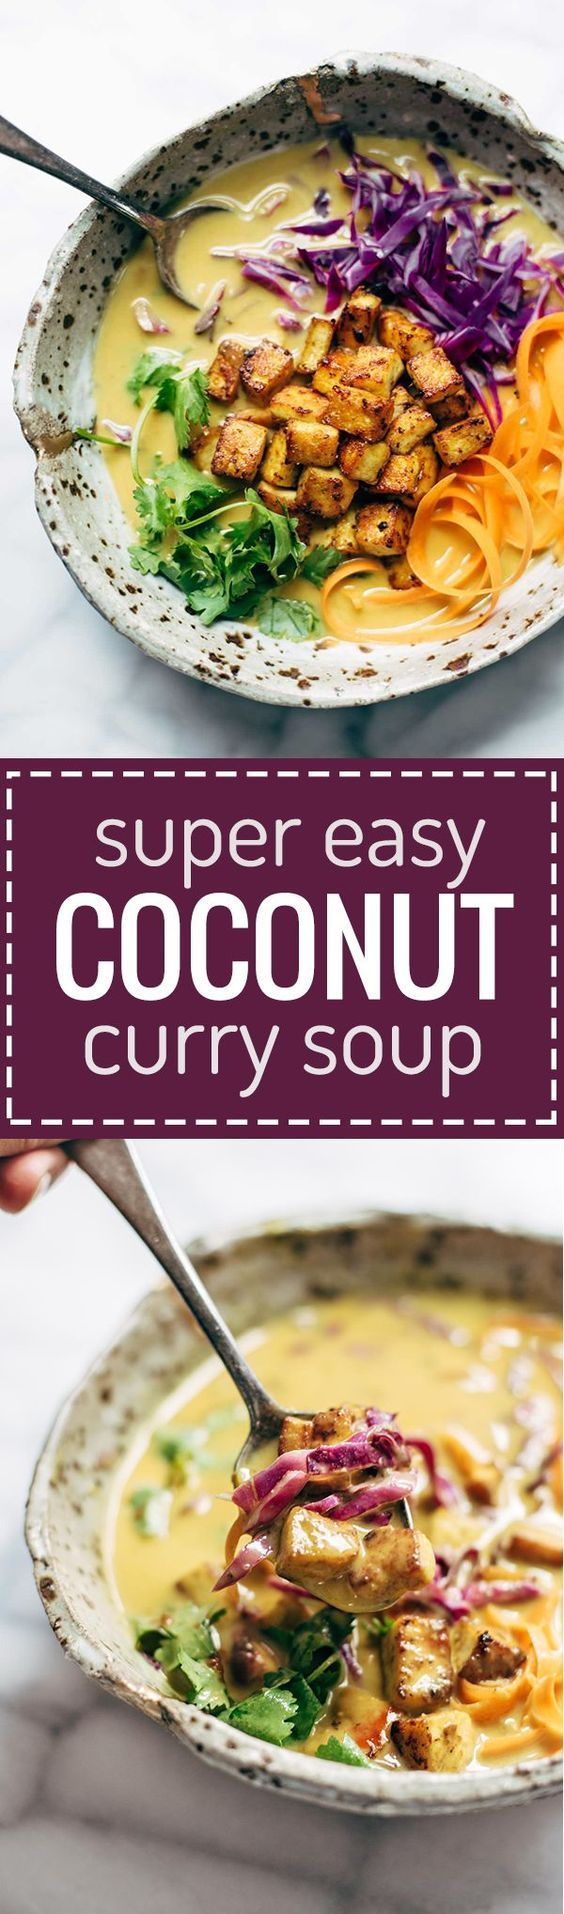 Coconut Curry Soup - this easy recipe can be made with almost ANY vegetables you have on hand! Silky-smooth and full of flavor. Vegetarian and vegan.